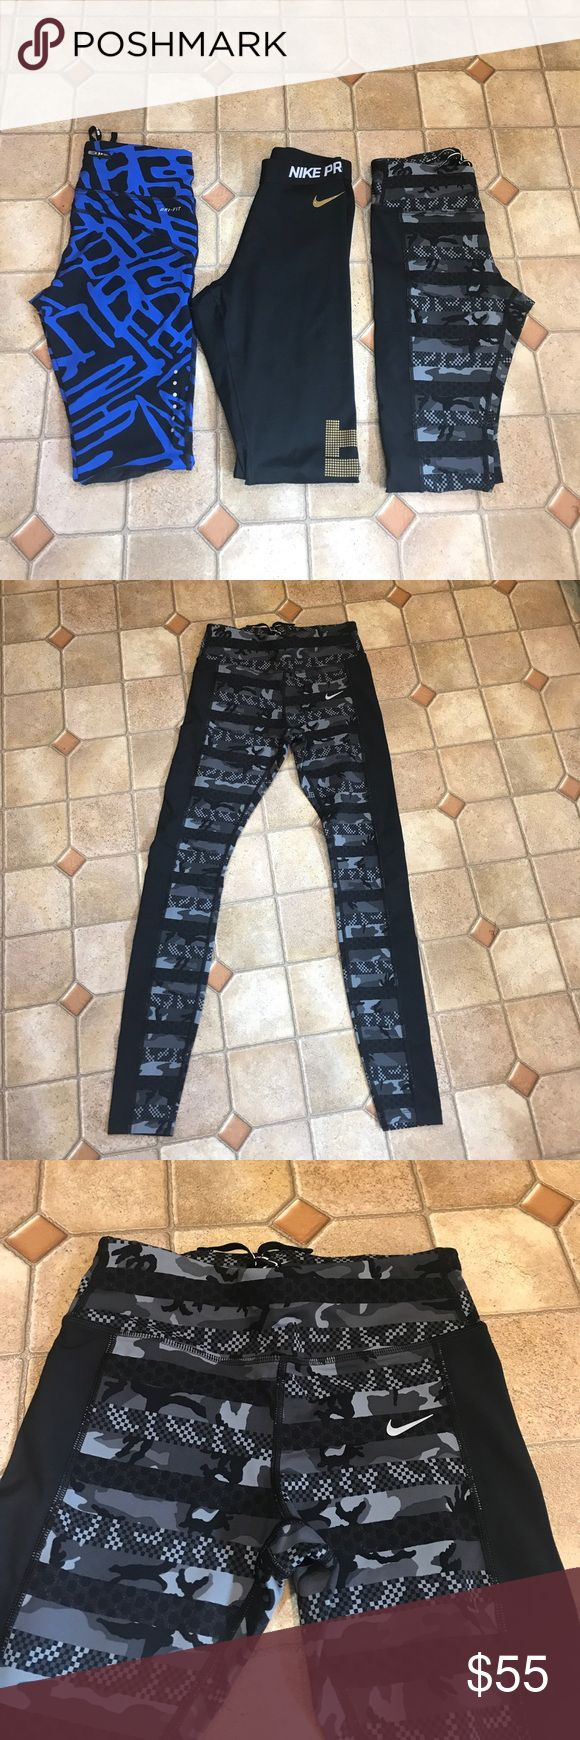 Nike dri-fit Capri/ Pant yoga workout pant lot S Bundle of 3 women's Nike workout pants/Capri ALL size SMALL. 2 are long, skinny leg, spandex workout pants. One pair is black with gold bubble letters down the leg that says just do it. Other pair is black and gray camo print, last pair is Capri length. Blue and black with mesh legs. All are in mint condition- no flaws! Nike Pants Skinny